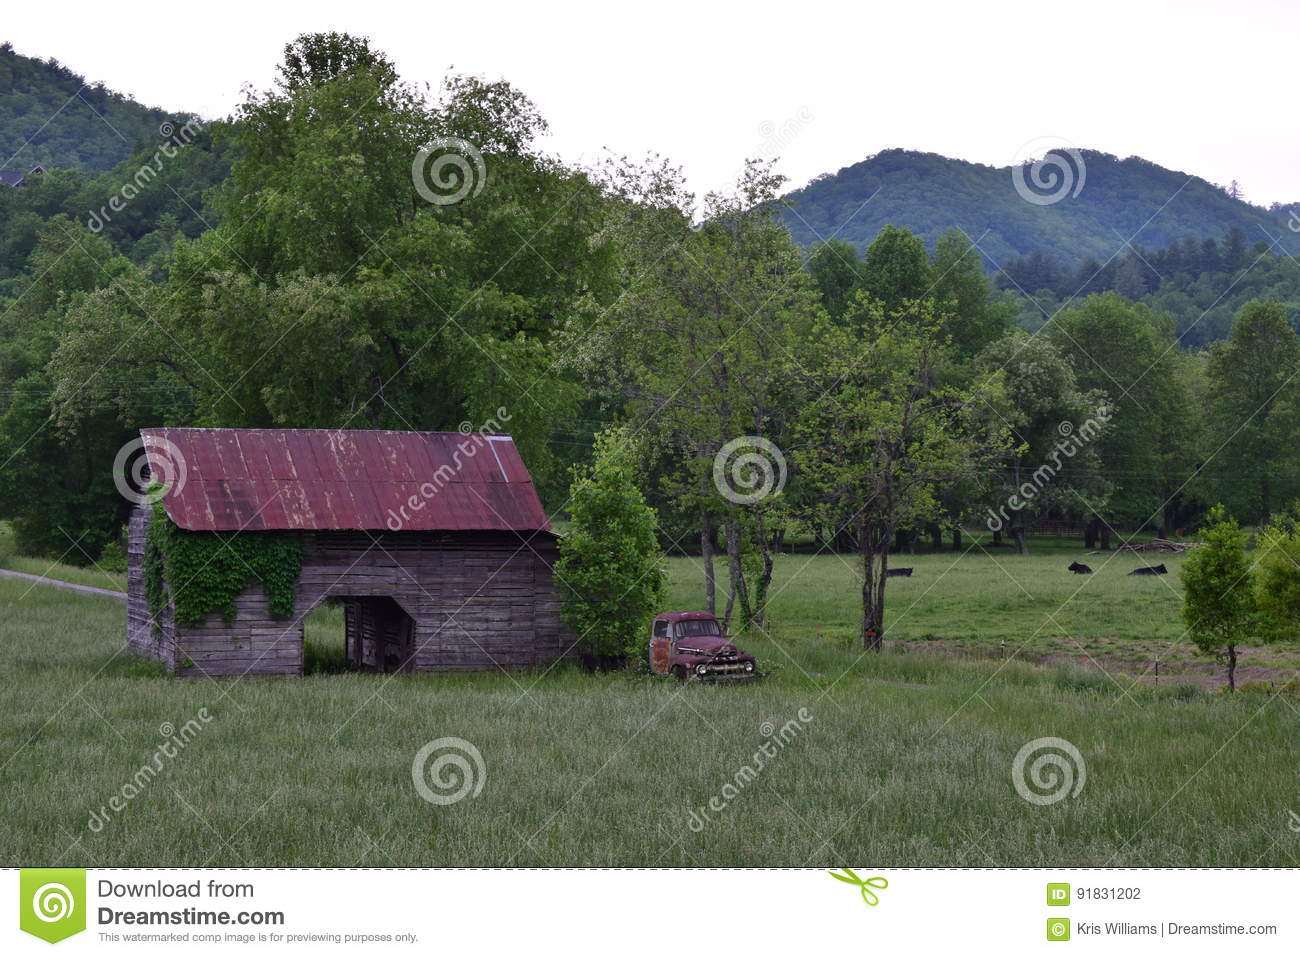 Pasture view with barn, truck, cows, and mountains